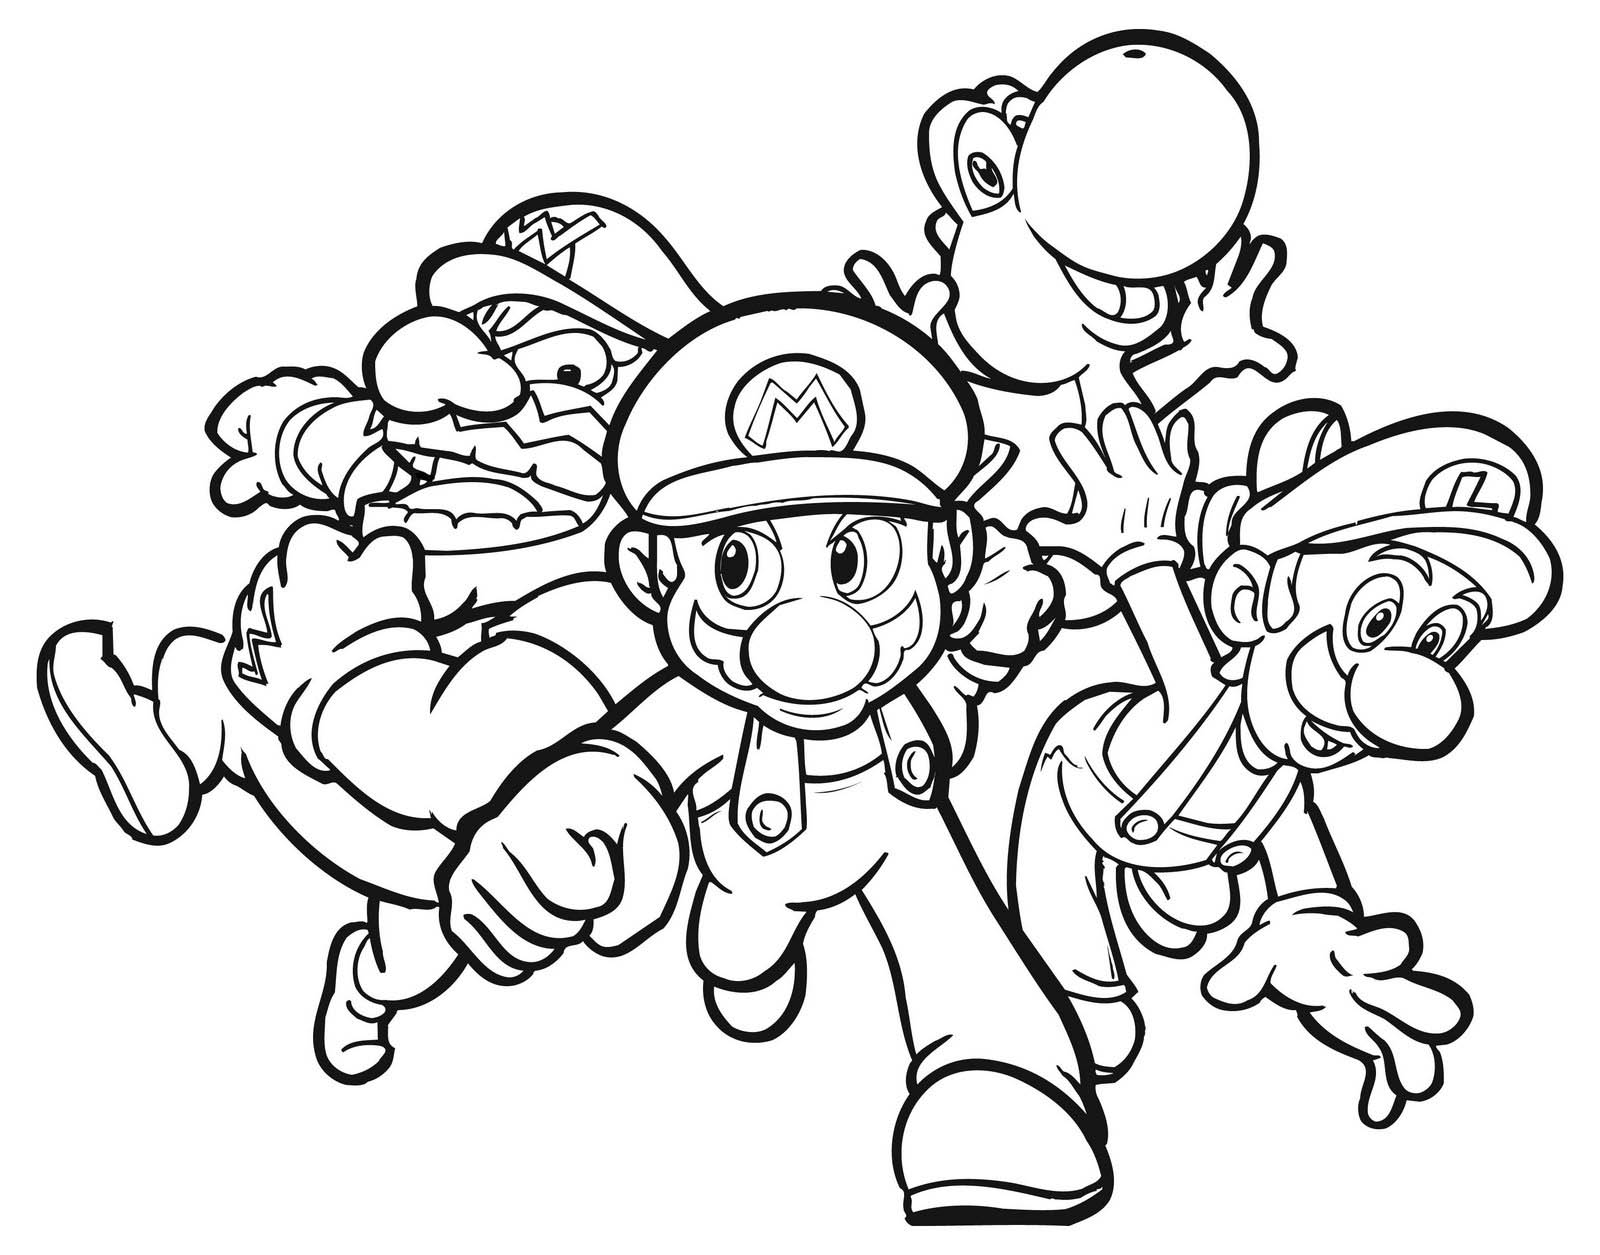 super mario bros coloring pages - photo#2